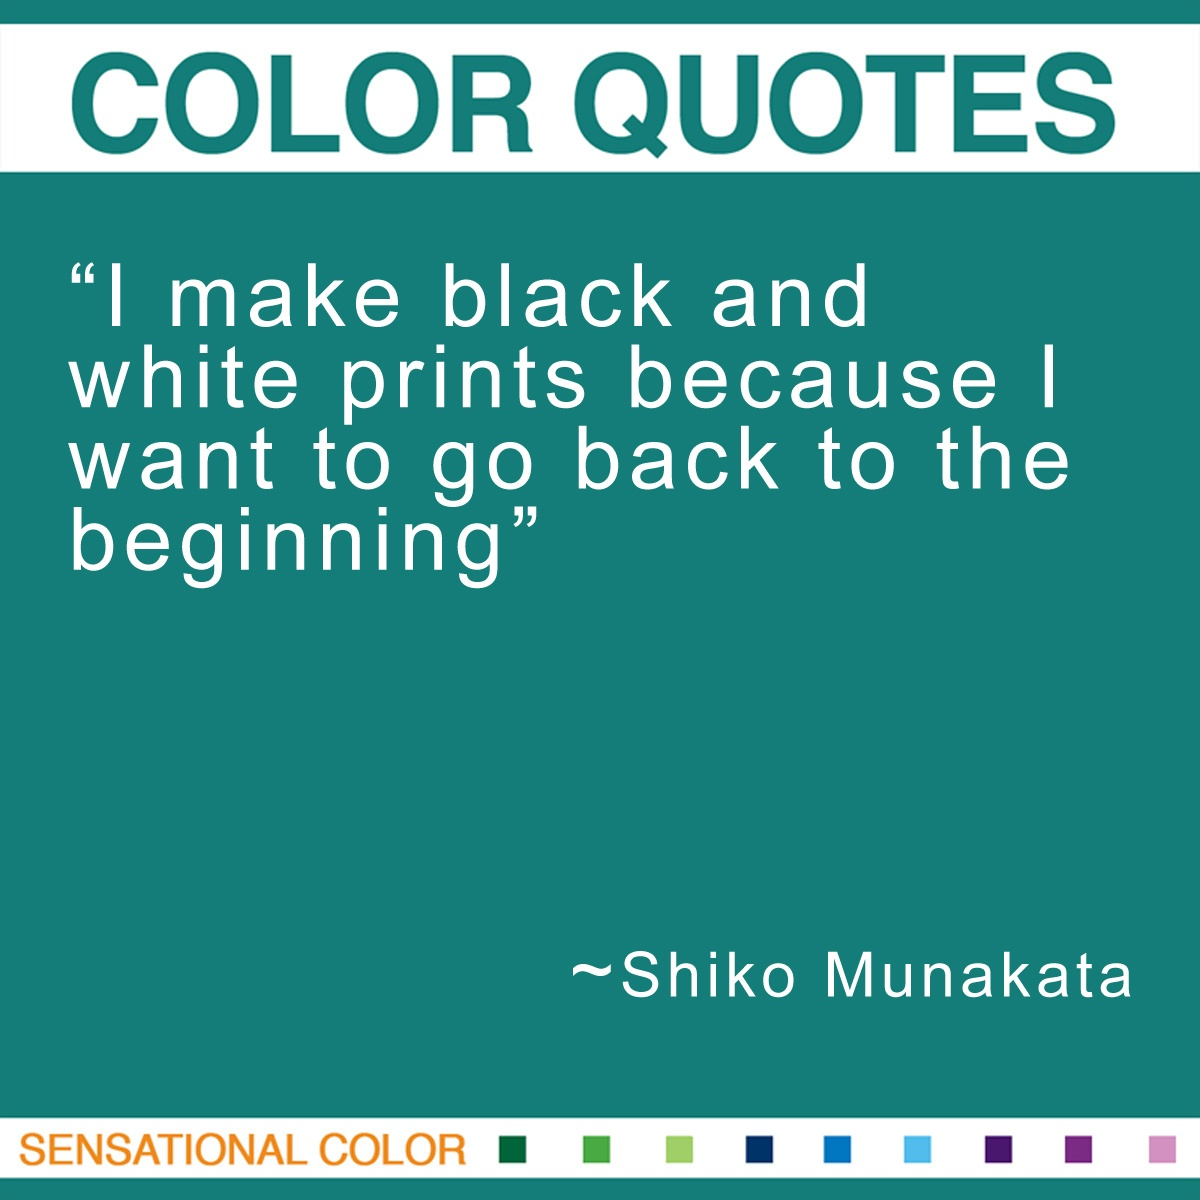 """I make black and white prints because I want to go back to the beginning."" - Shiko Munakata"